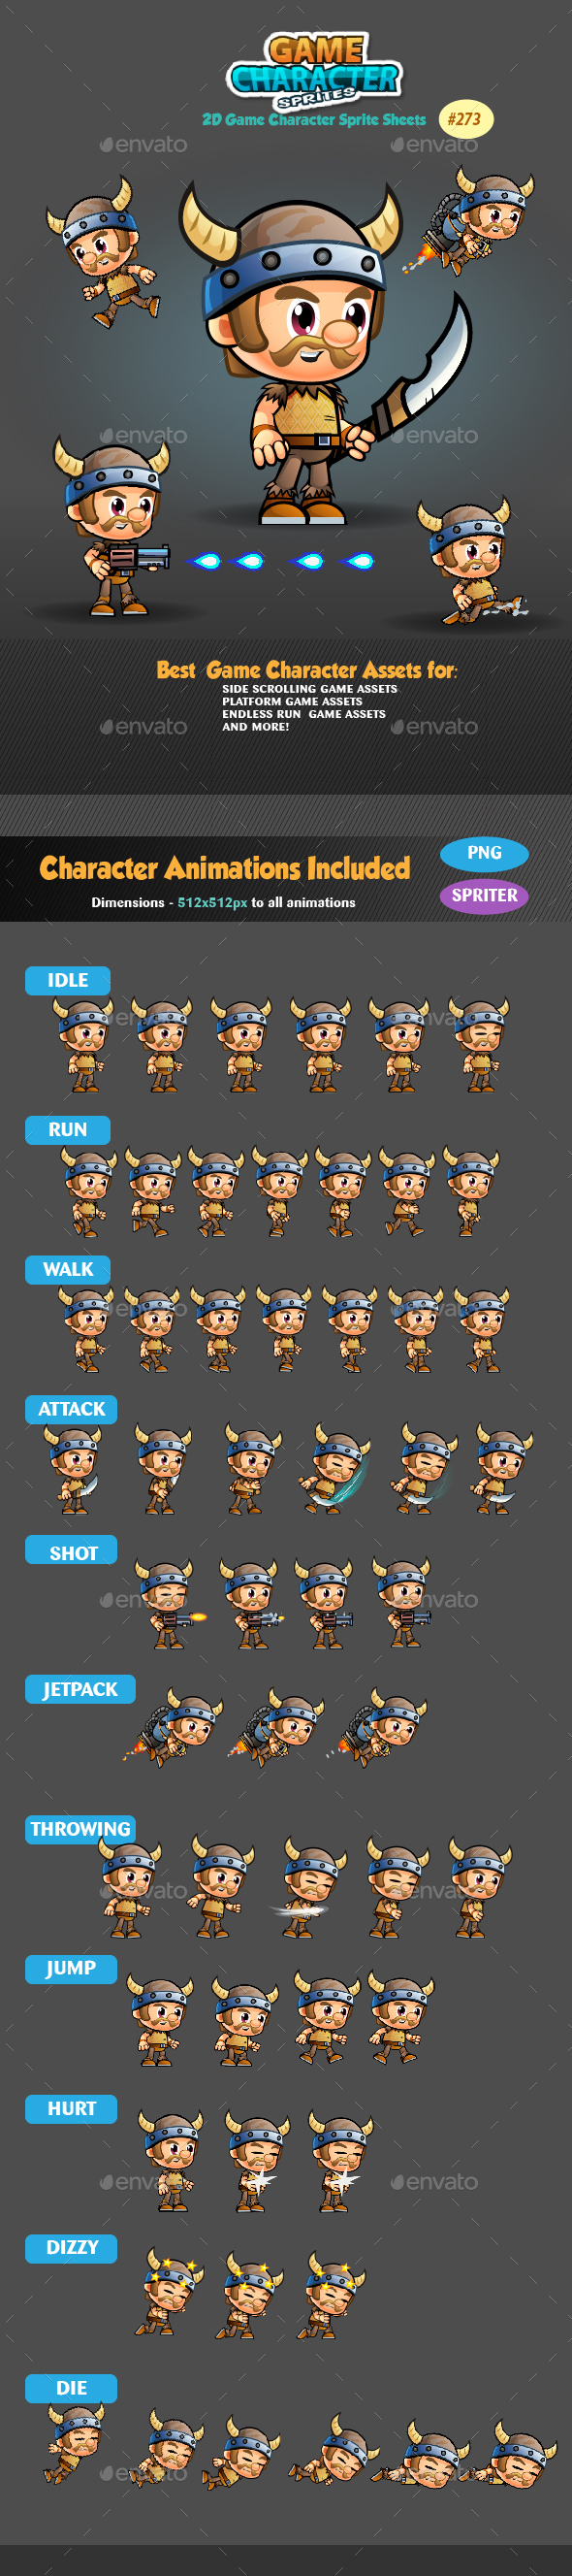 Viking 2D Game Character Sprites 273 - Sprites Game Assets